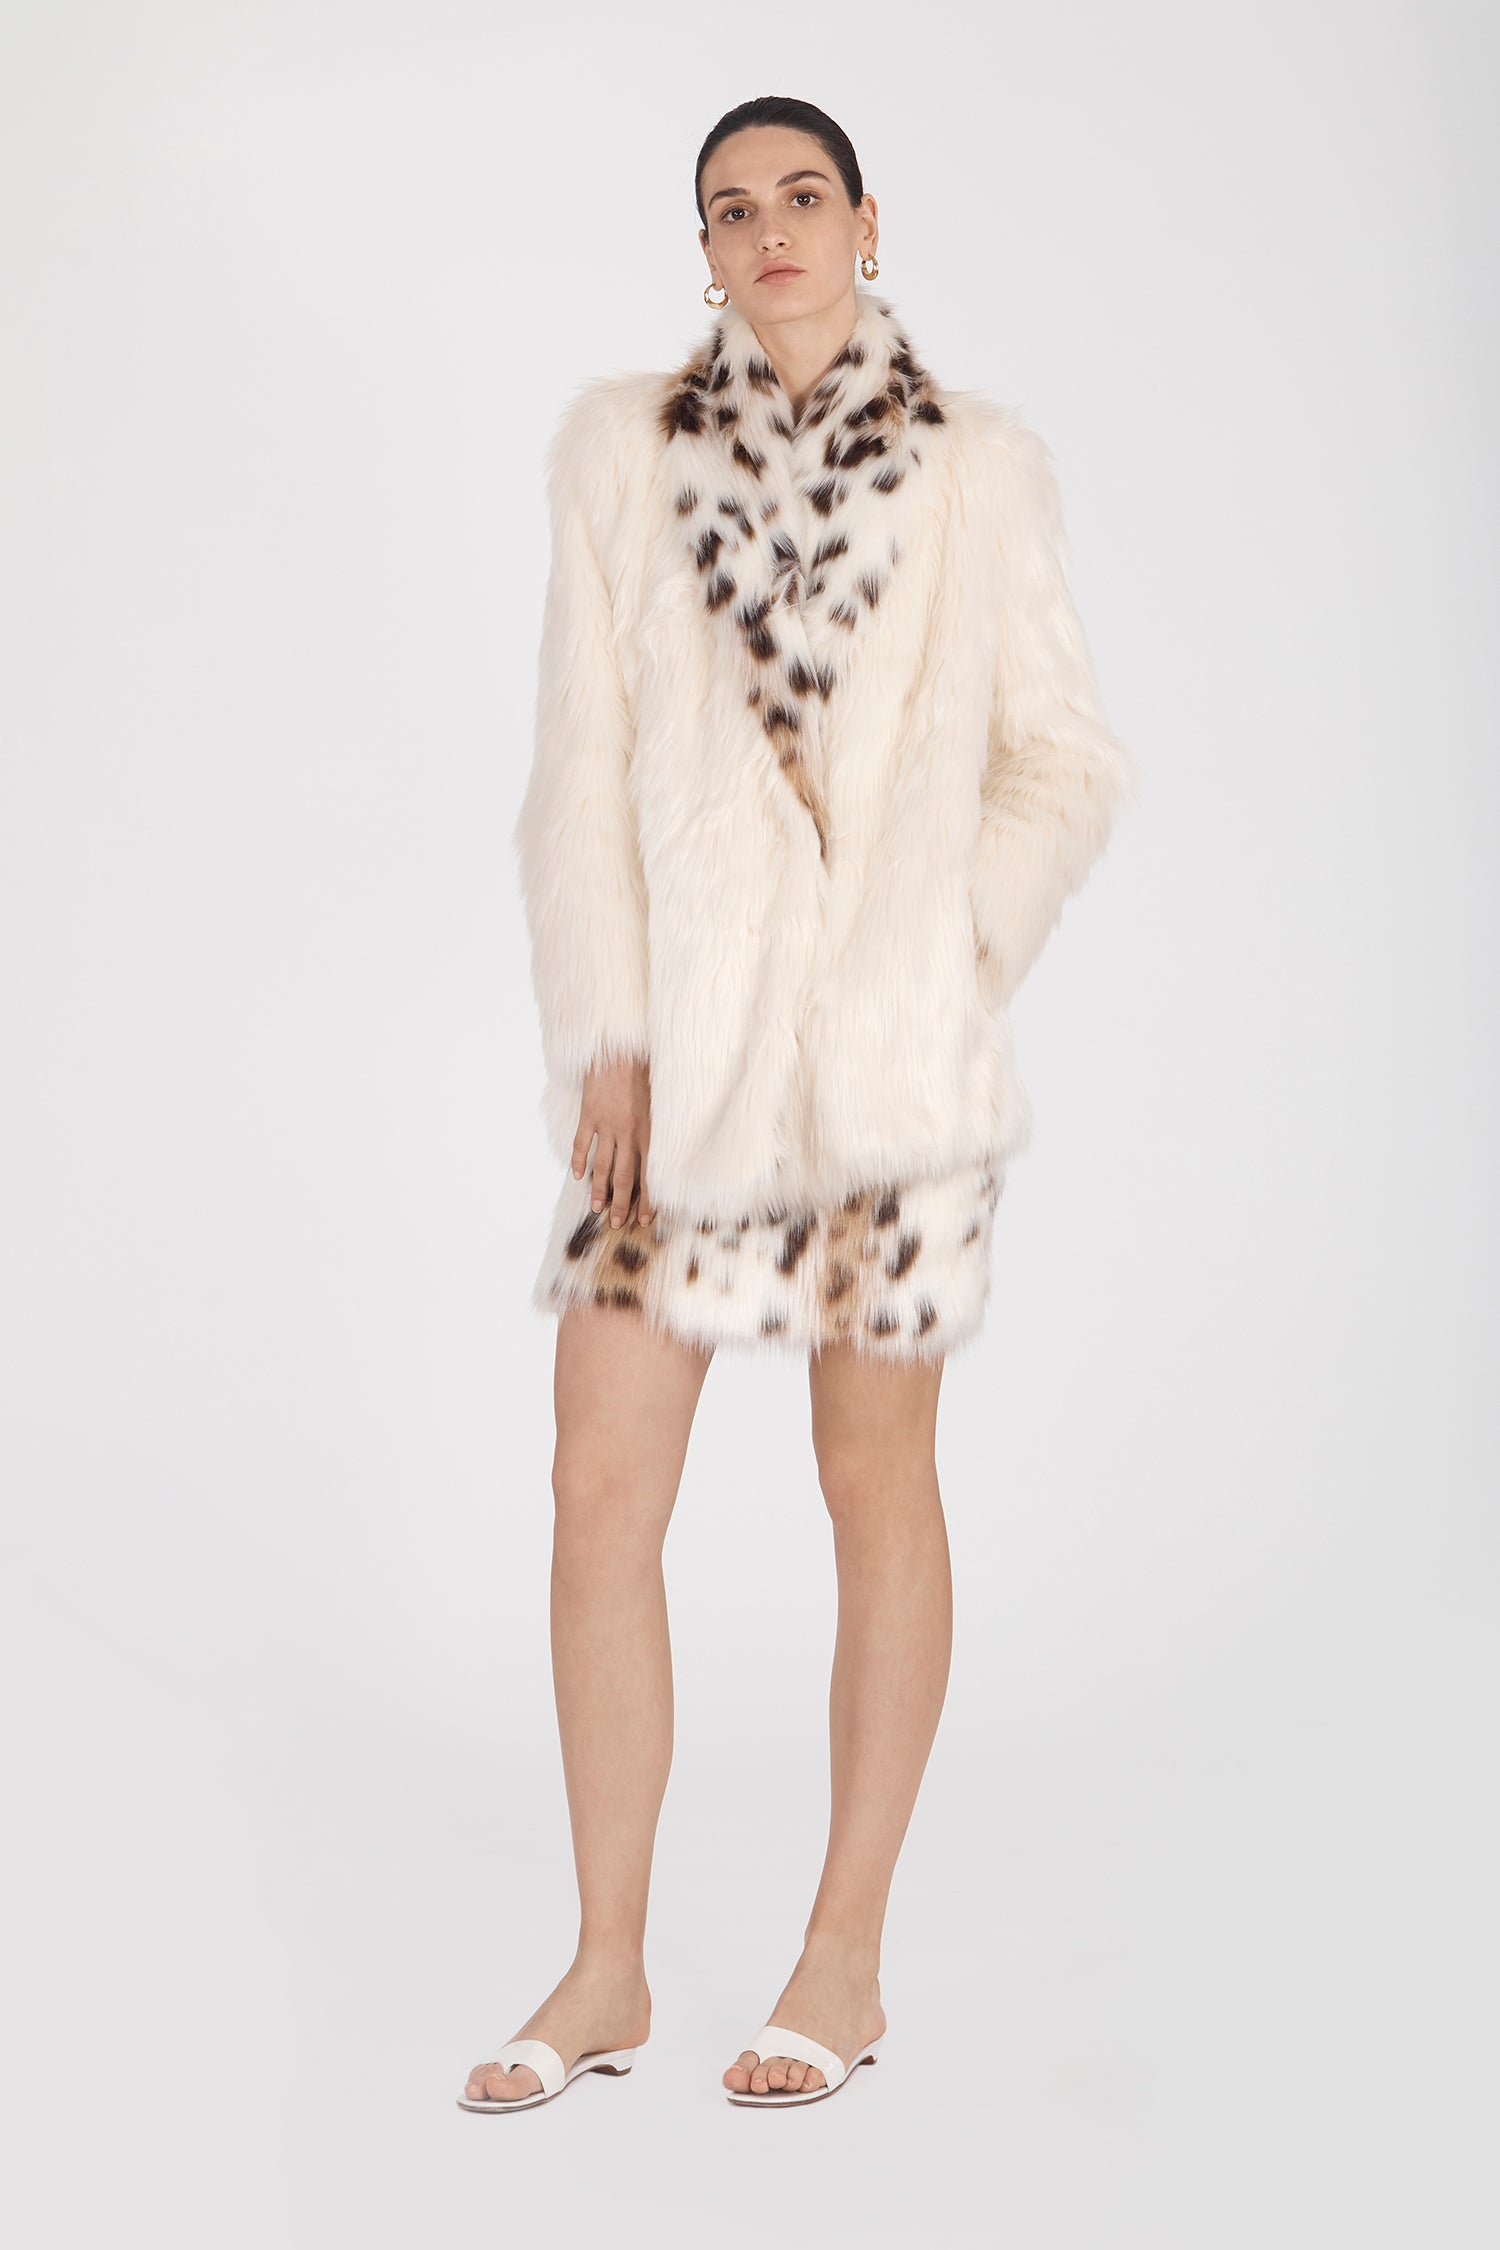 Marei1998's Tiger Lily Faux Fur Coat In White Color. Featuring Oversized Silhouette And Shawl Collar. Spotted Collar Design Contrasts The Elegant White Hue, Creating A Chic Look. As Worn By The Model. Front View. Resort 2020 Collection - Furless Friendship.